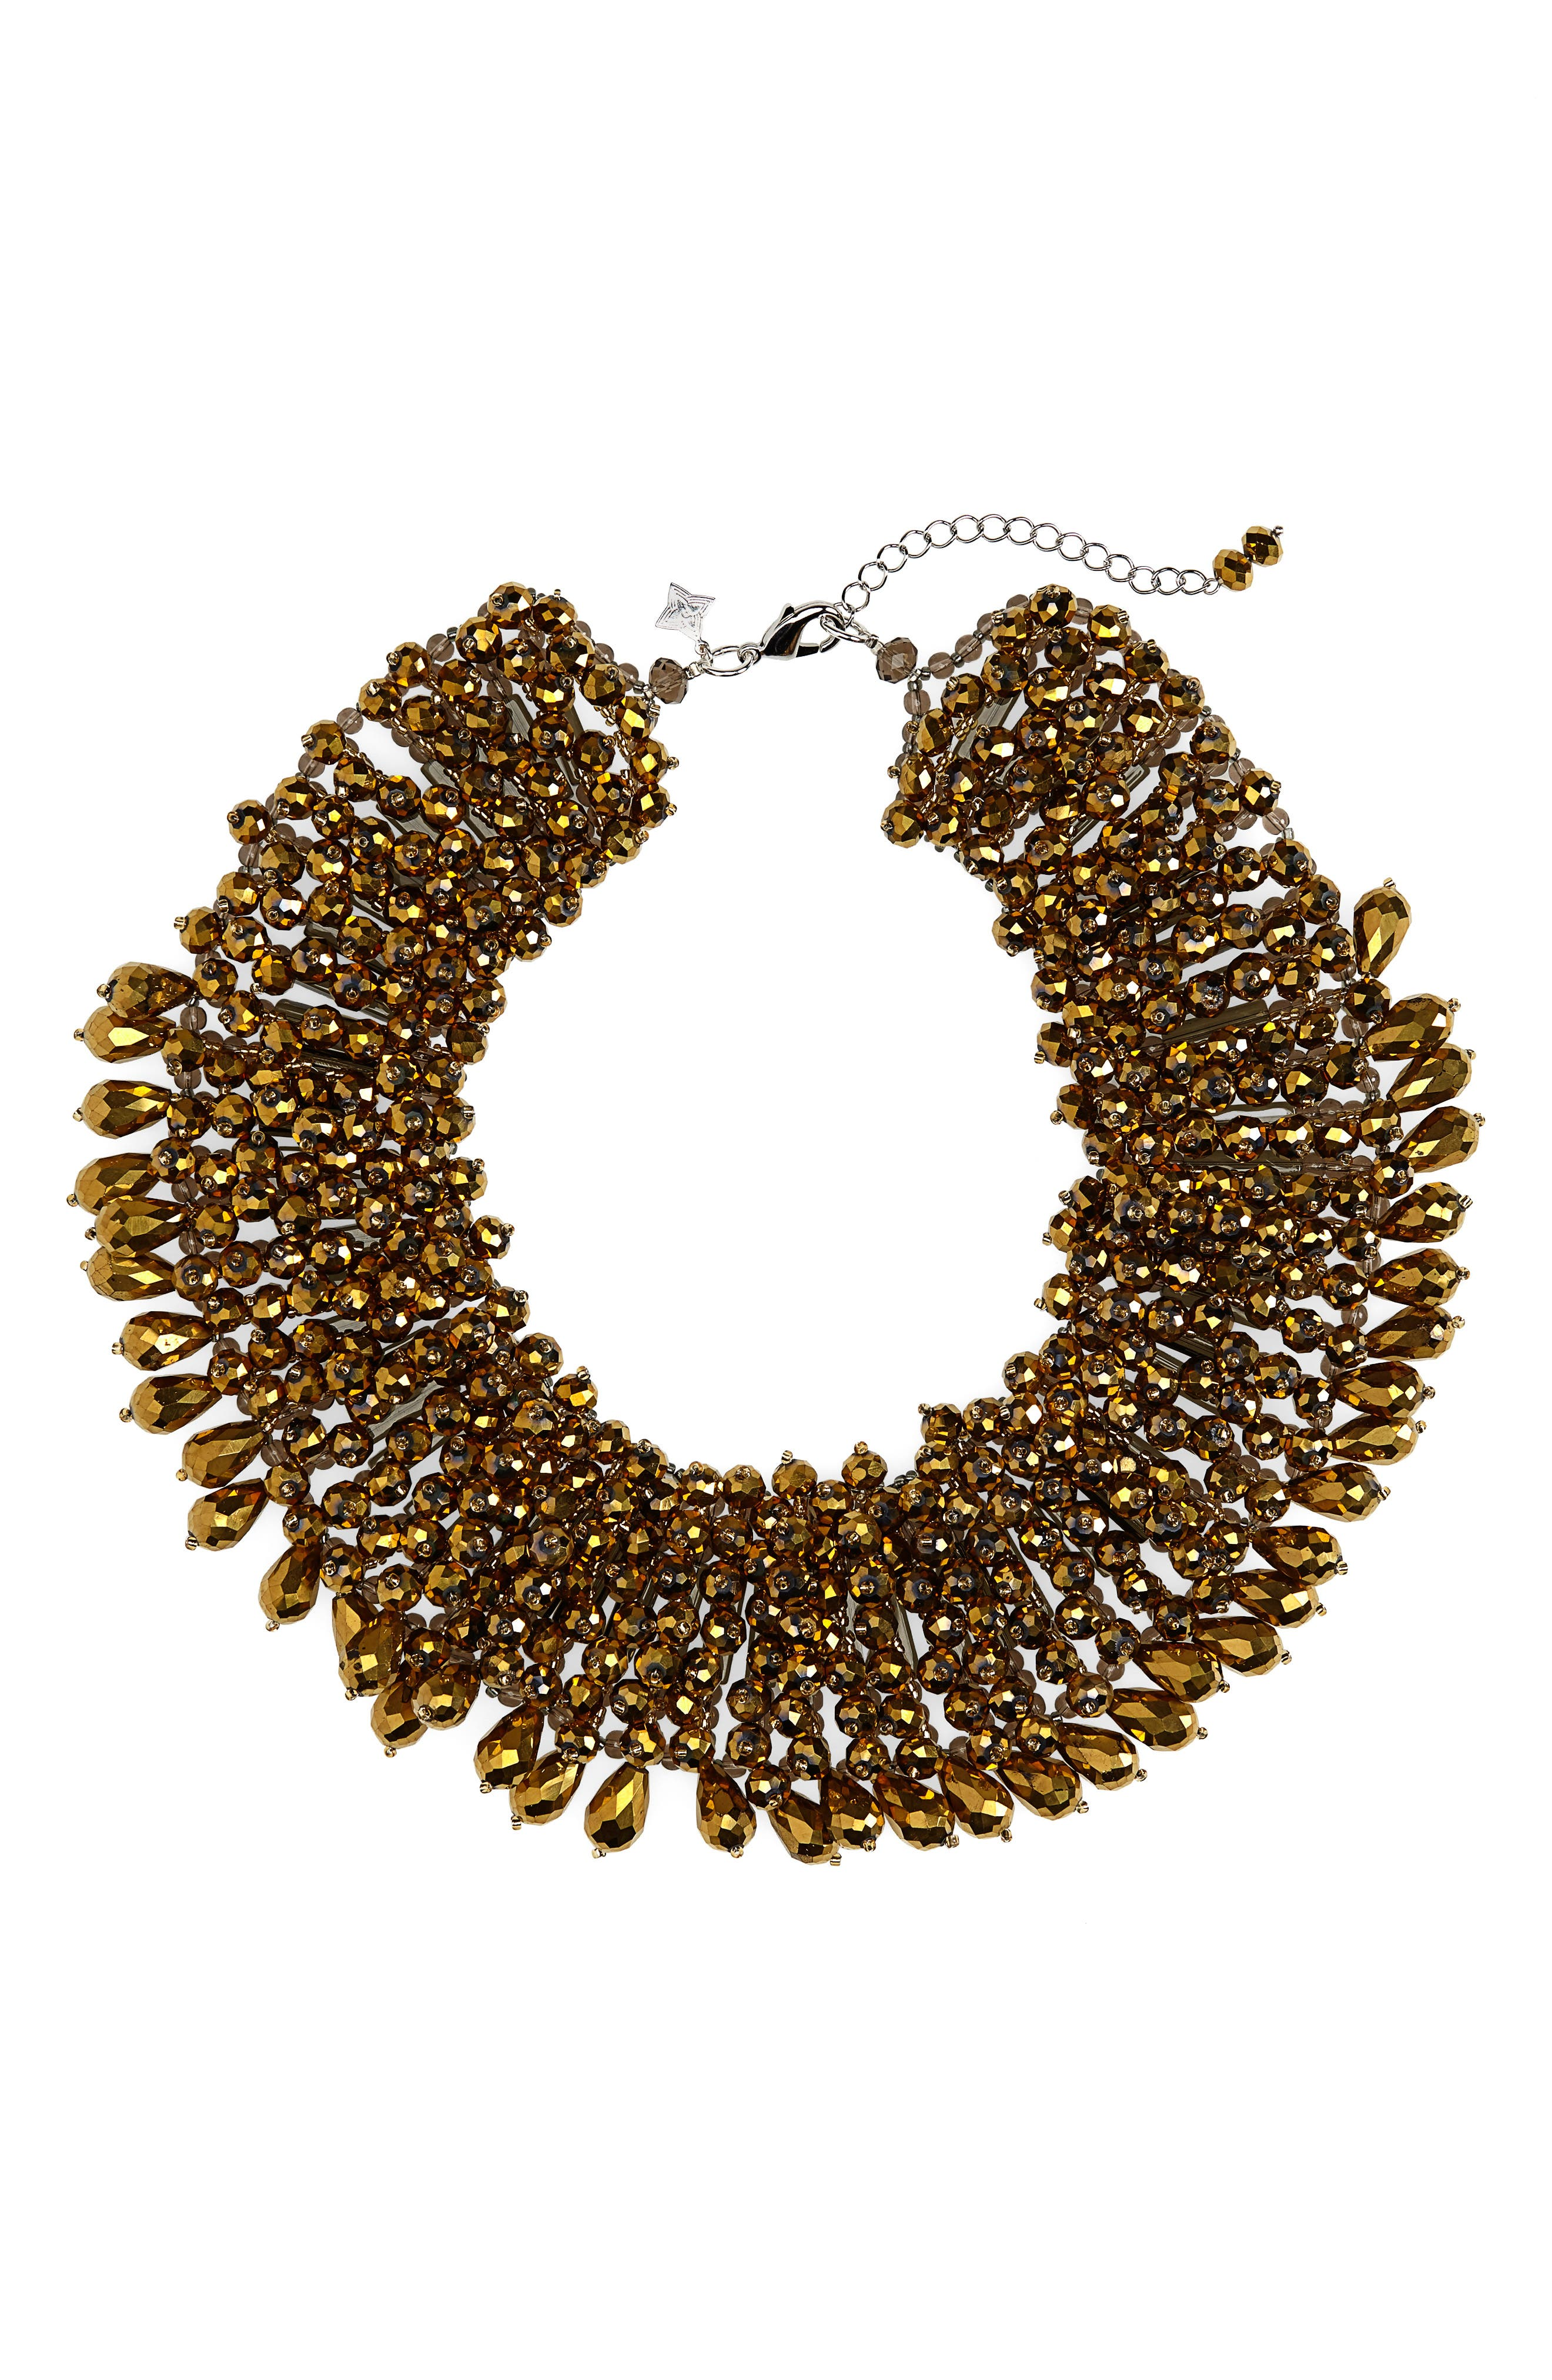 PANACEA Crystal Statement Collar Necklace in Gold